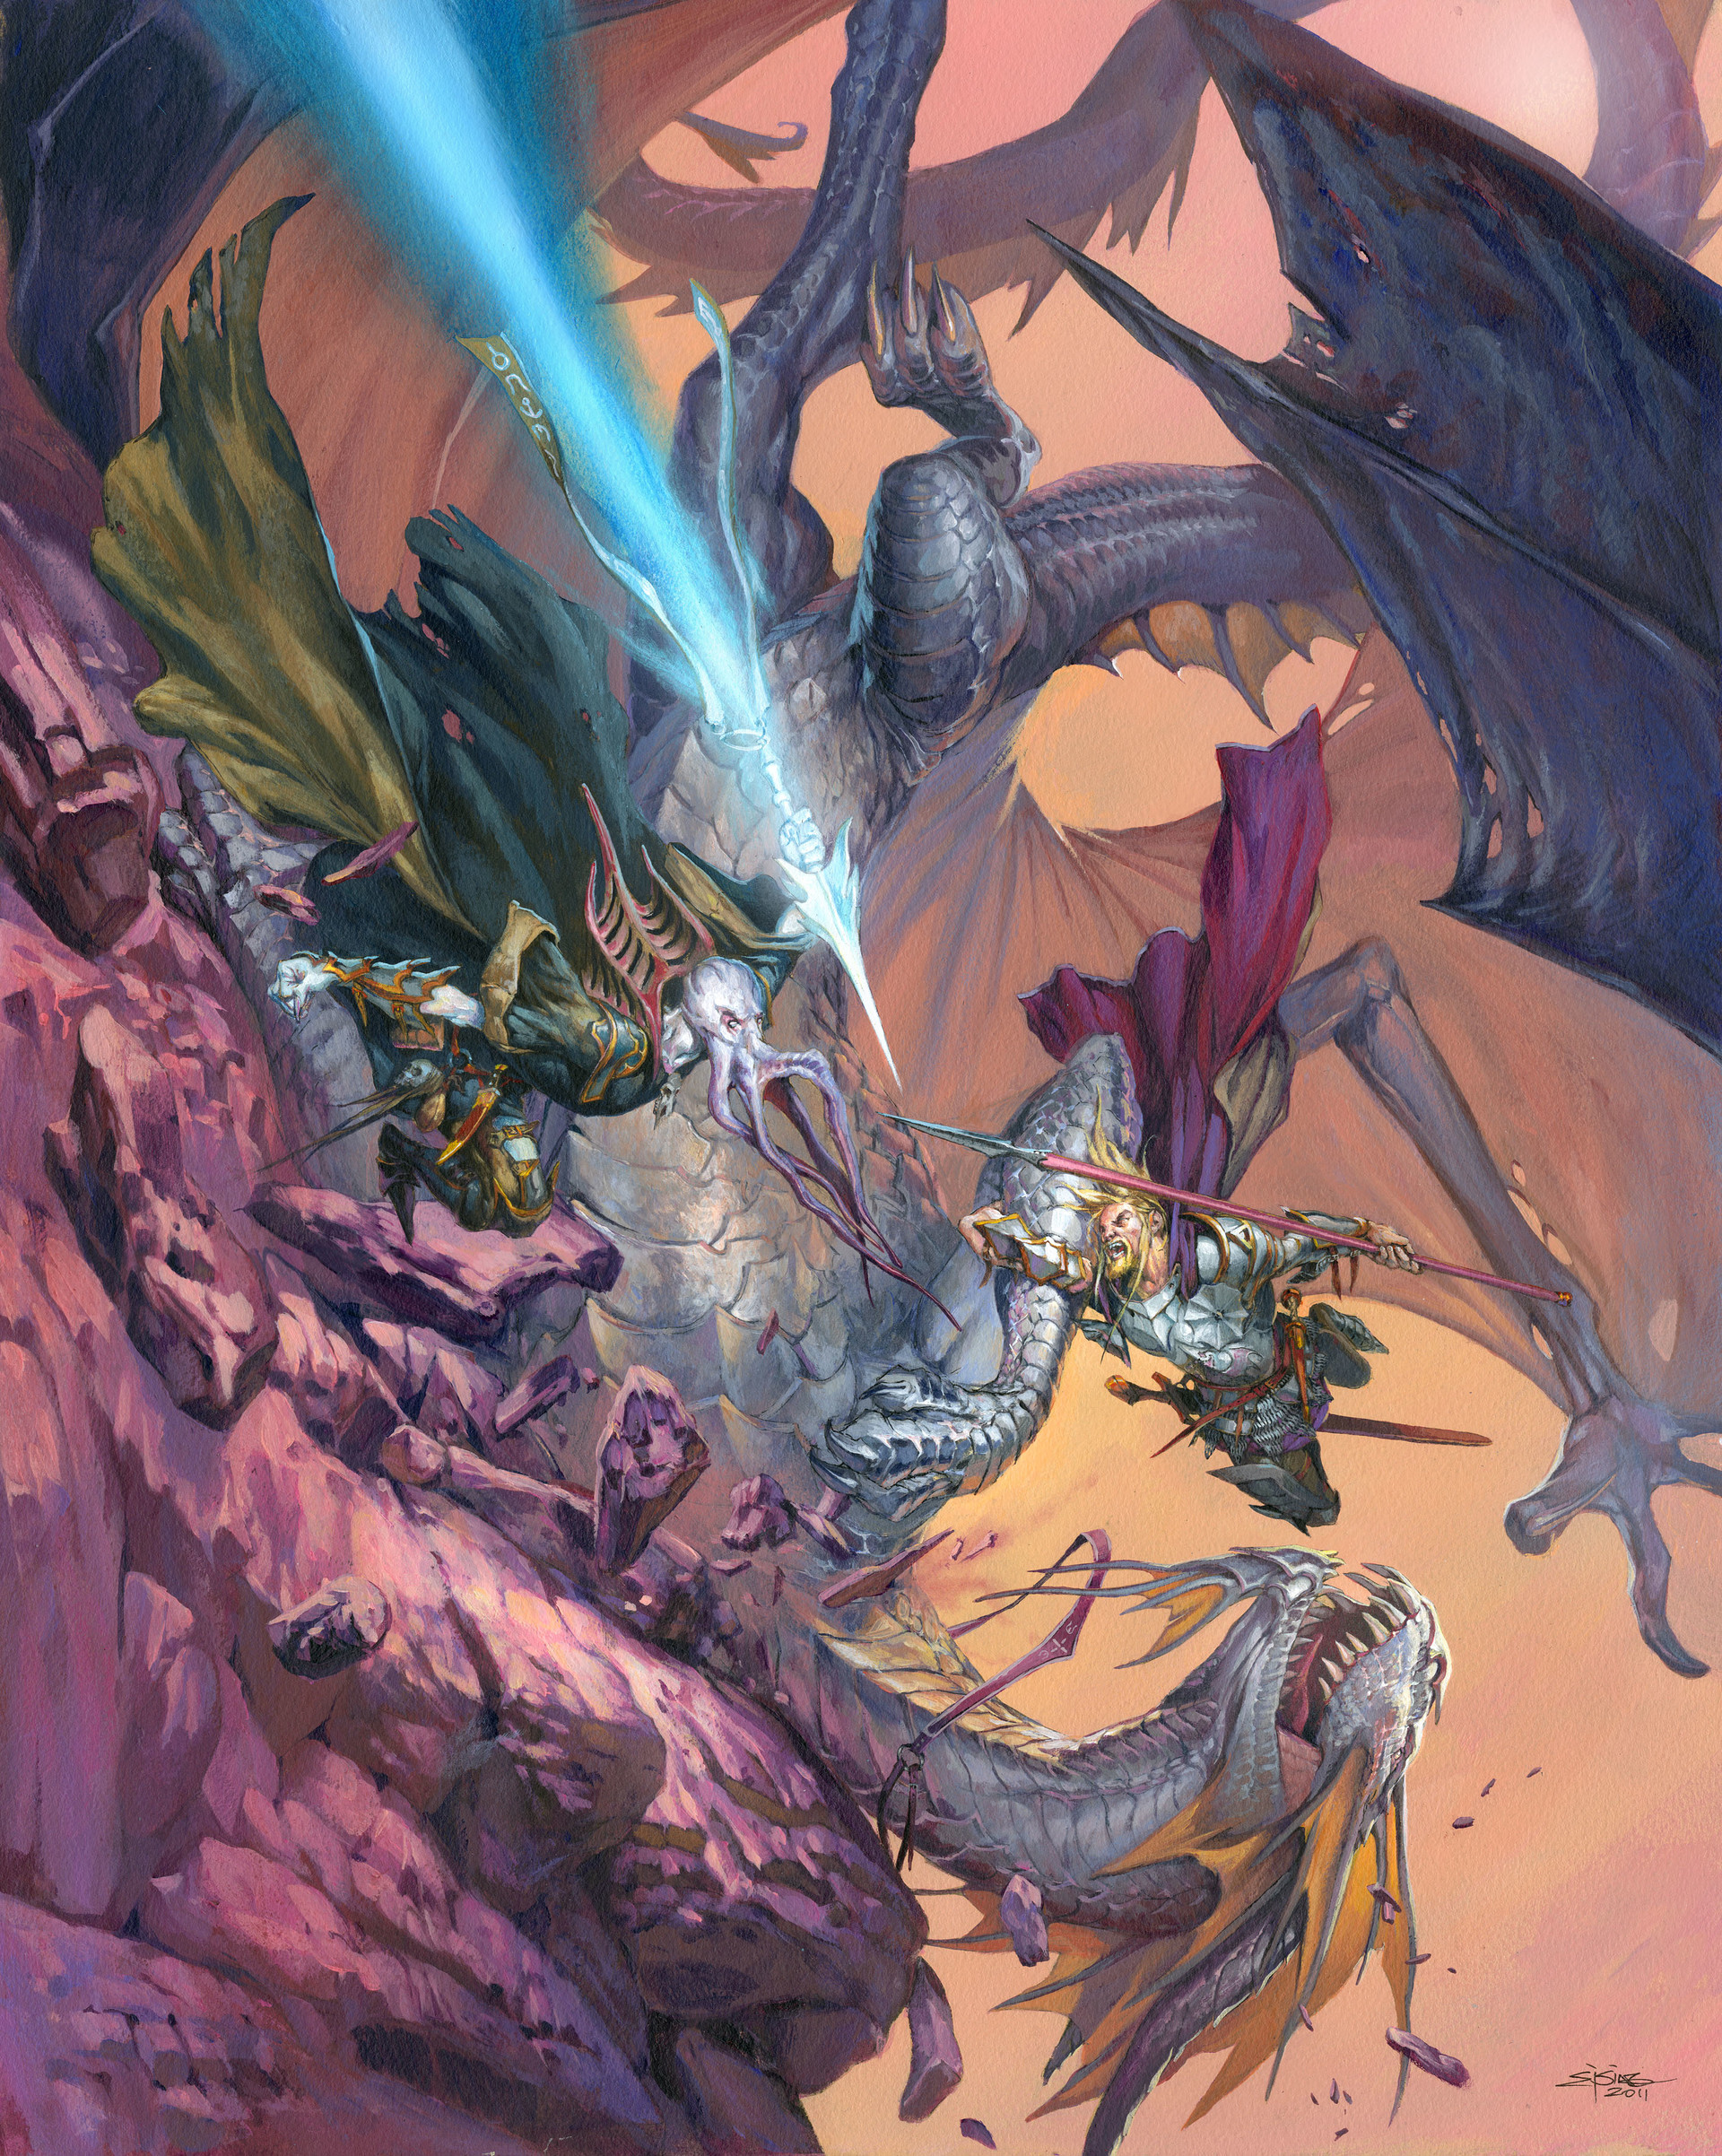 Jesper Ejsing Acrylic Painting Mindflayer vs Silverdragon A cover illustration for Atari